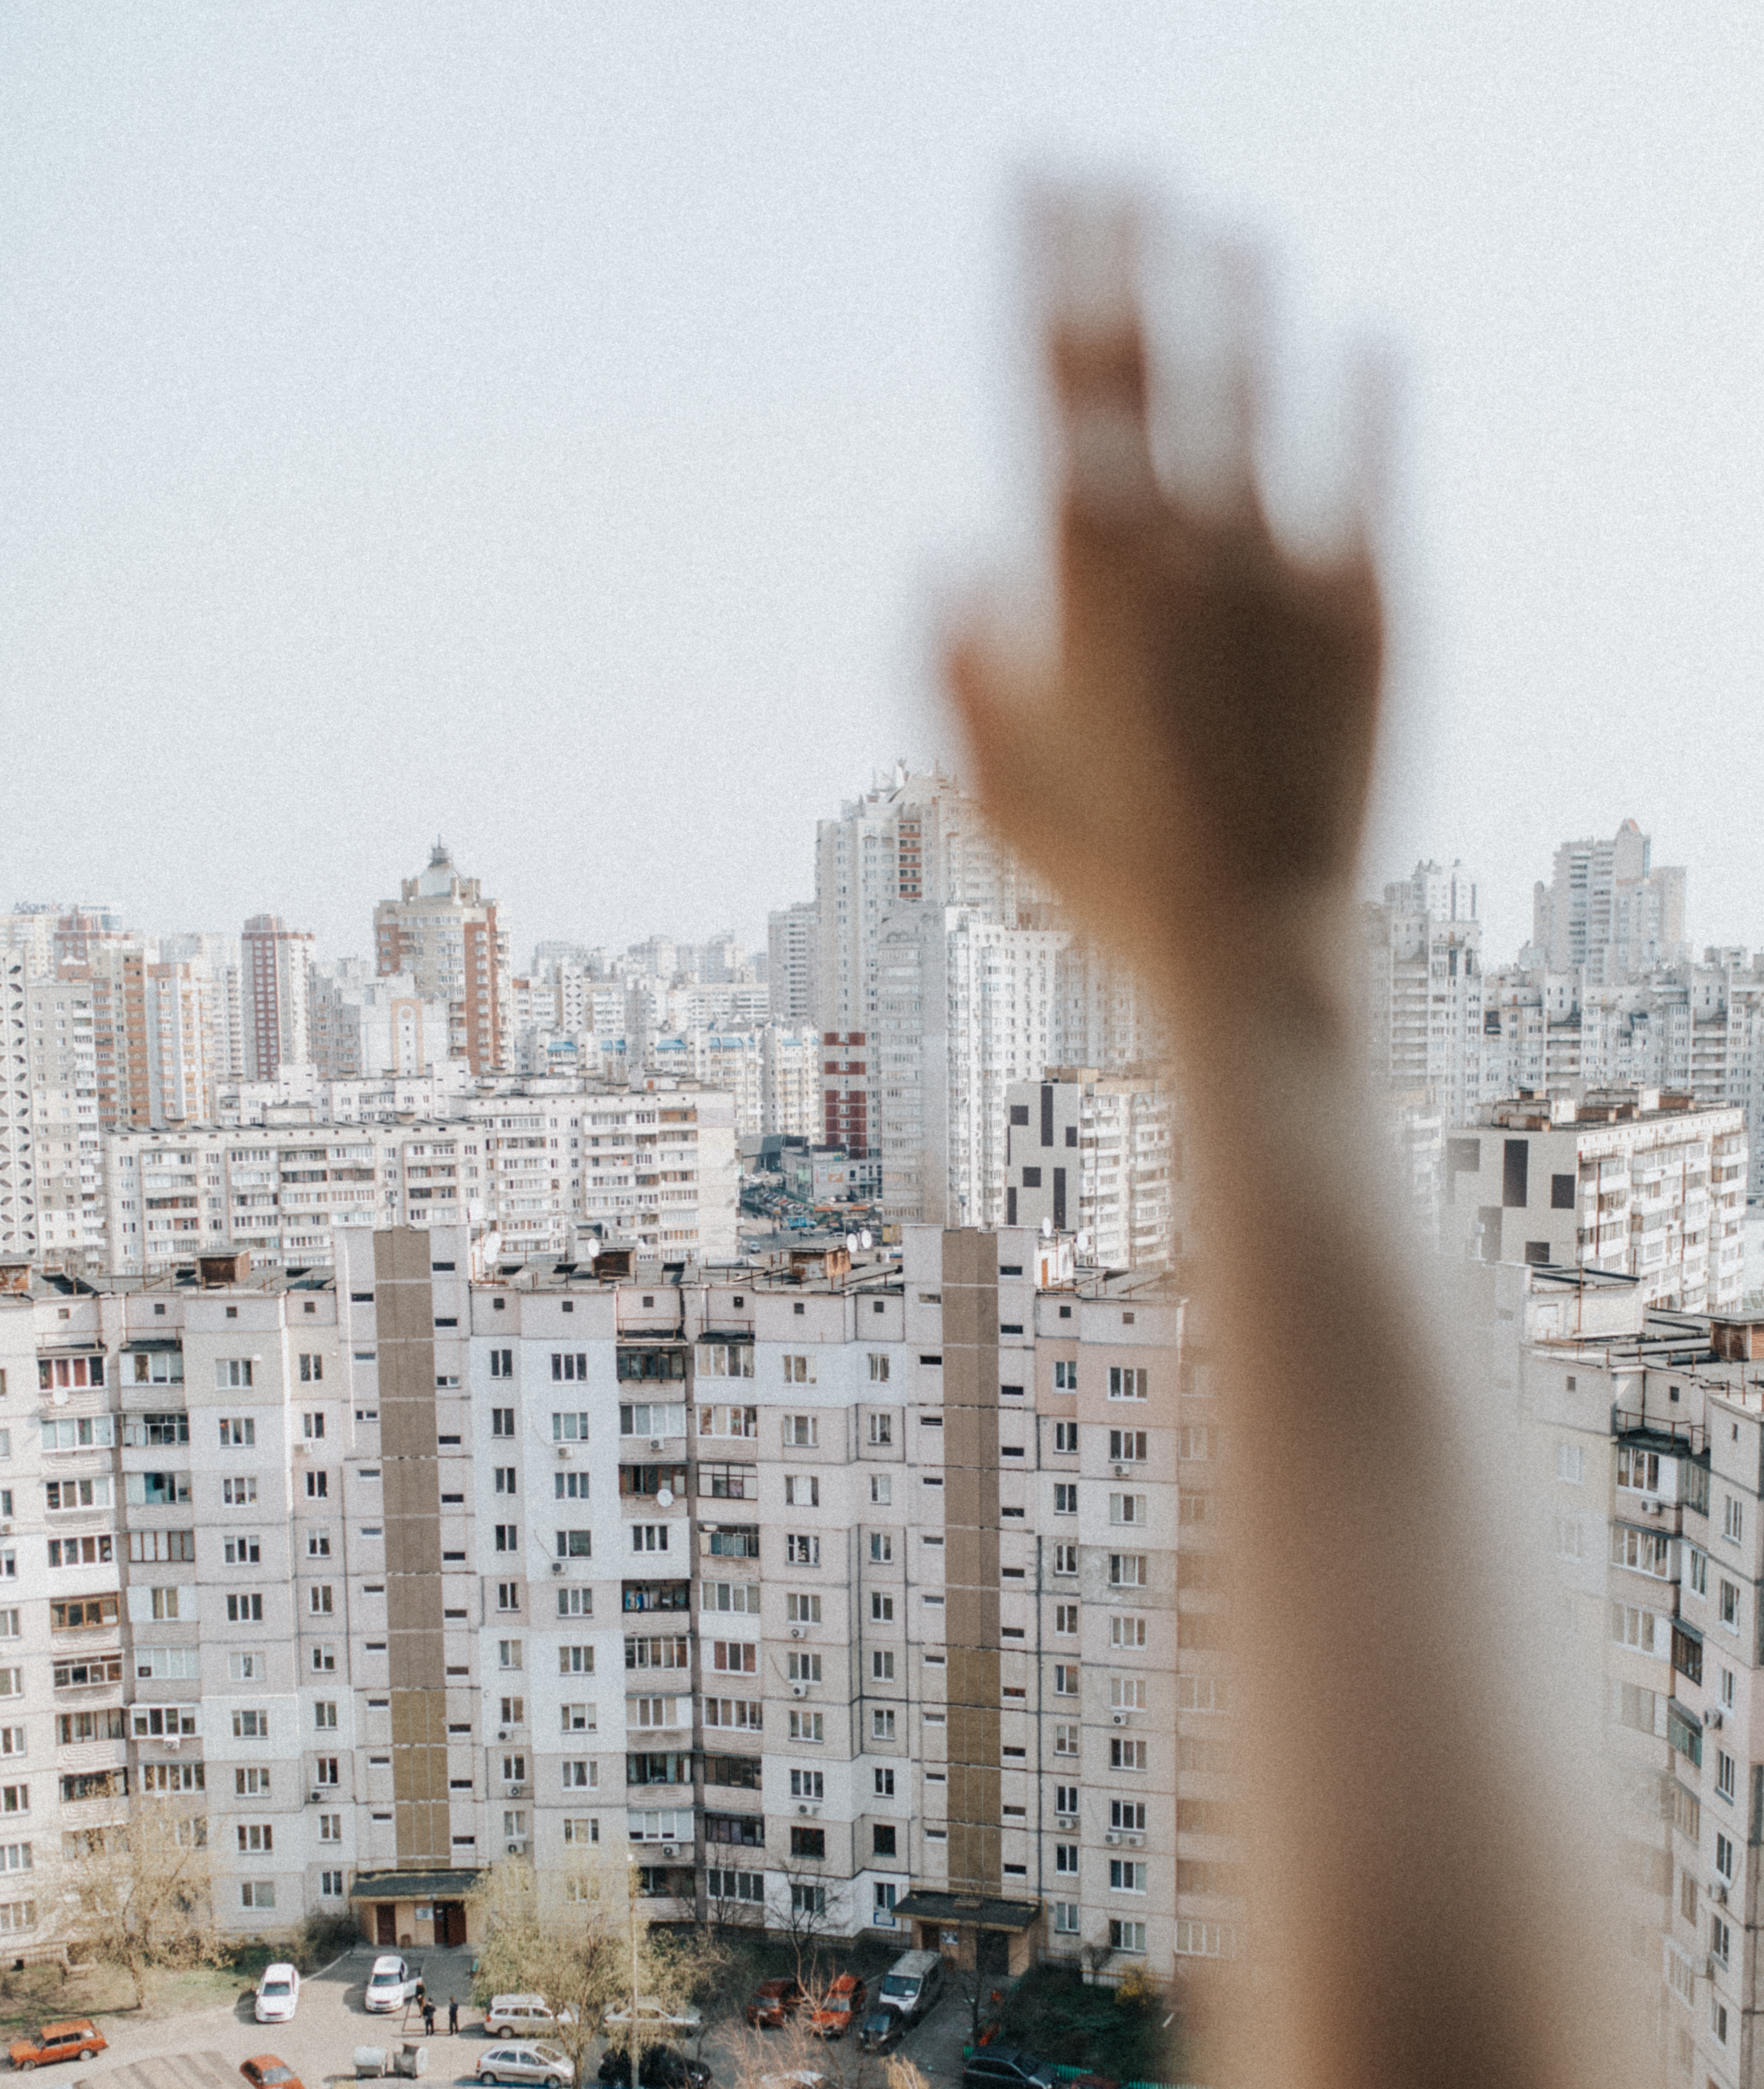 person raising hand in front of white concrete building during daytime